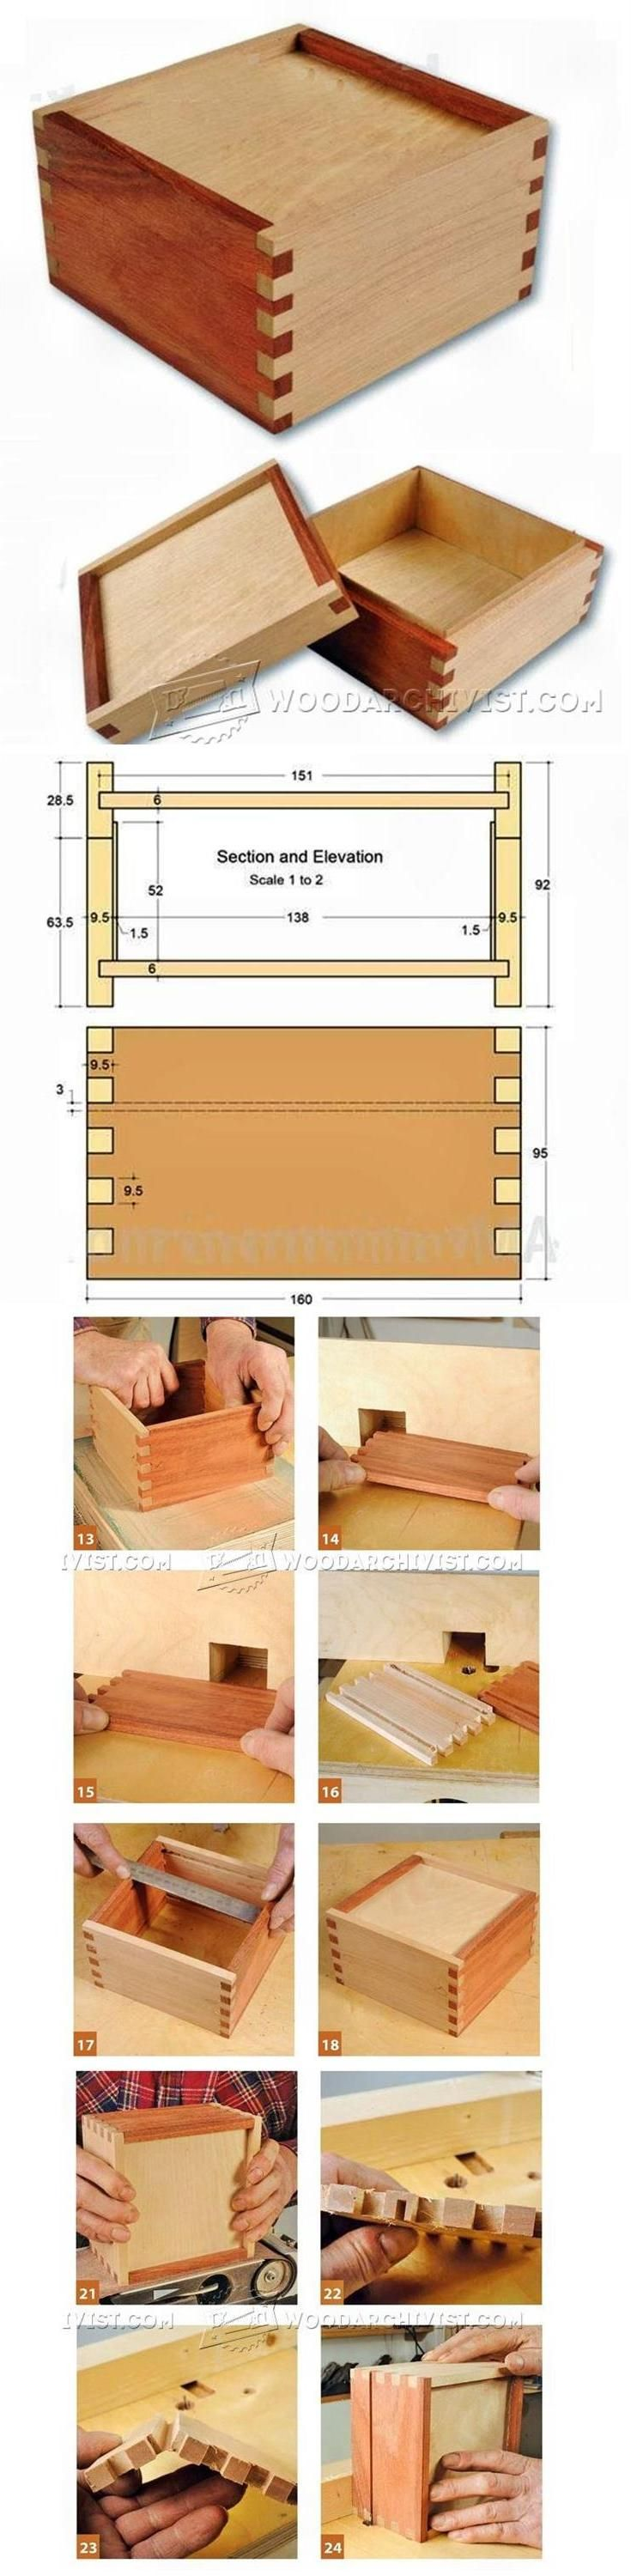 Finger Joint Box Plans Woodworking Plans and Projects